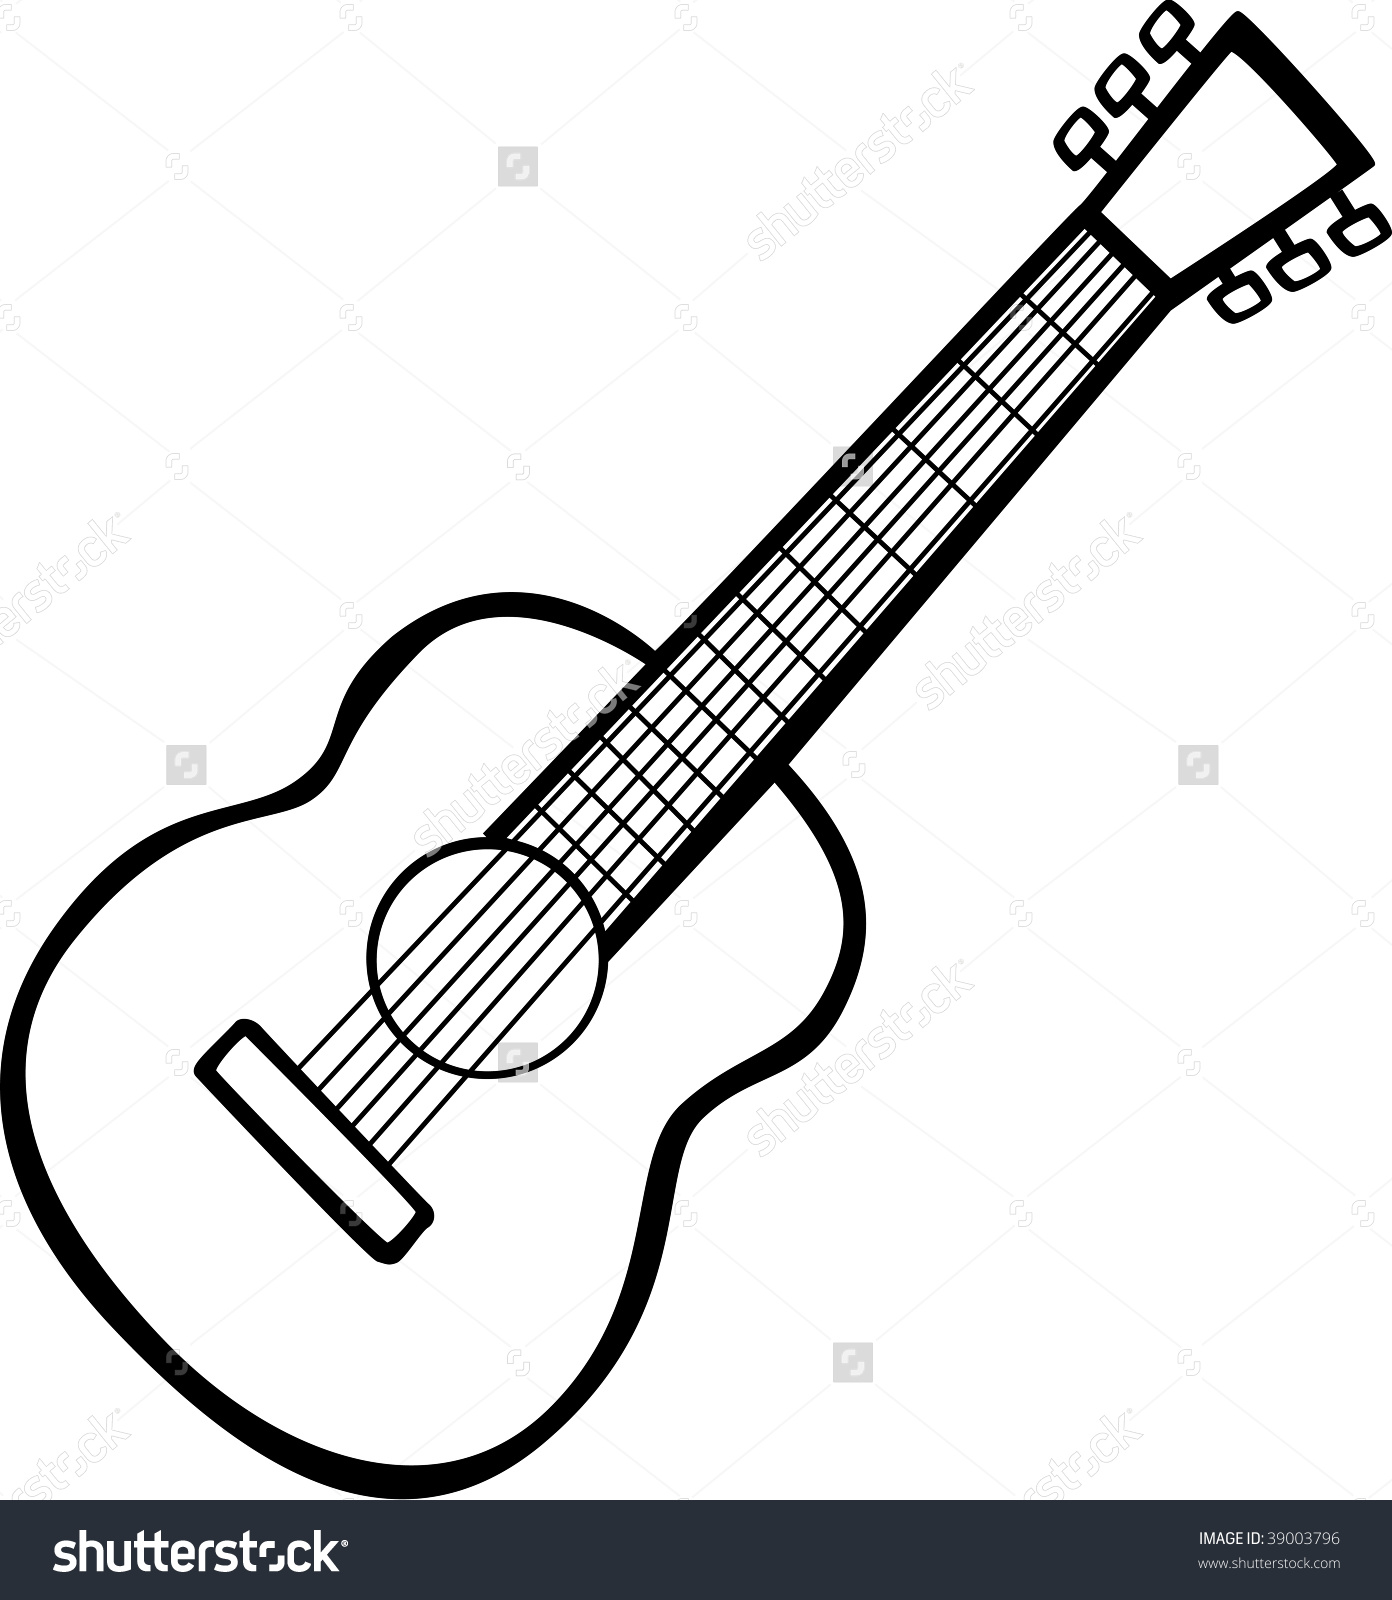 Line Drawing Guitar : Guitar outline drawing at getdrawings free for